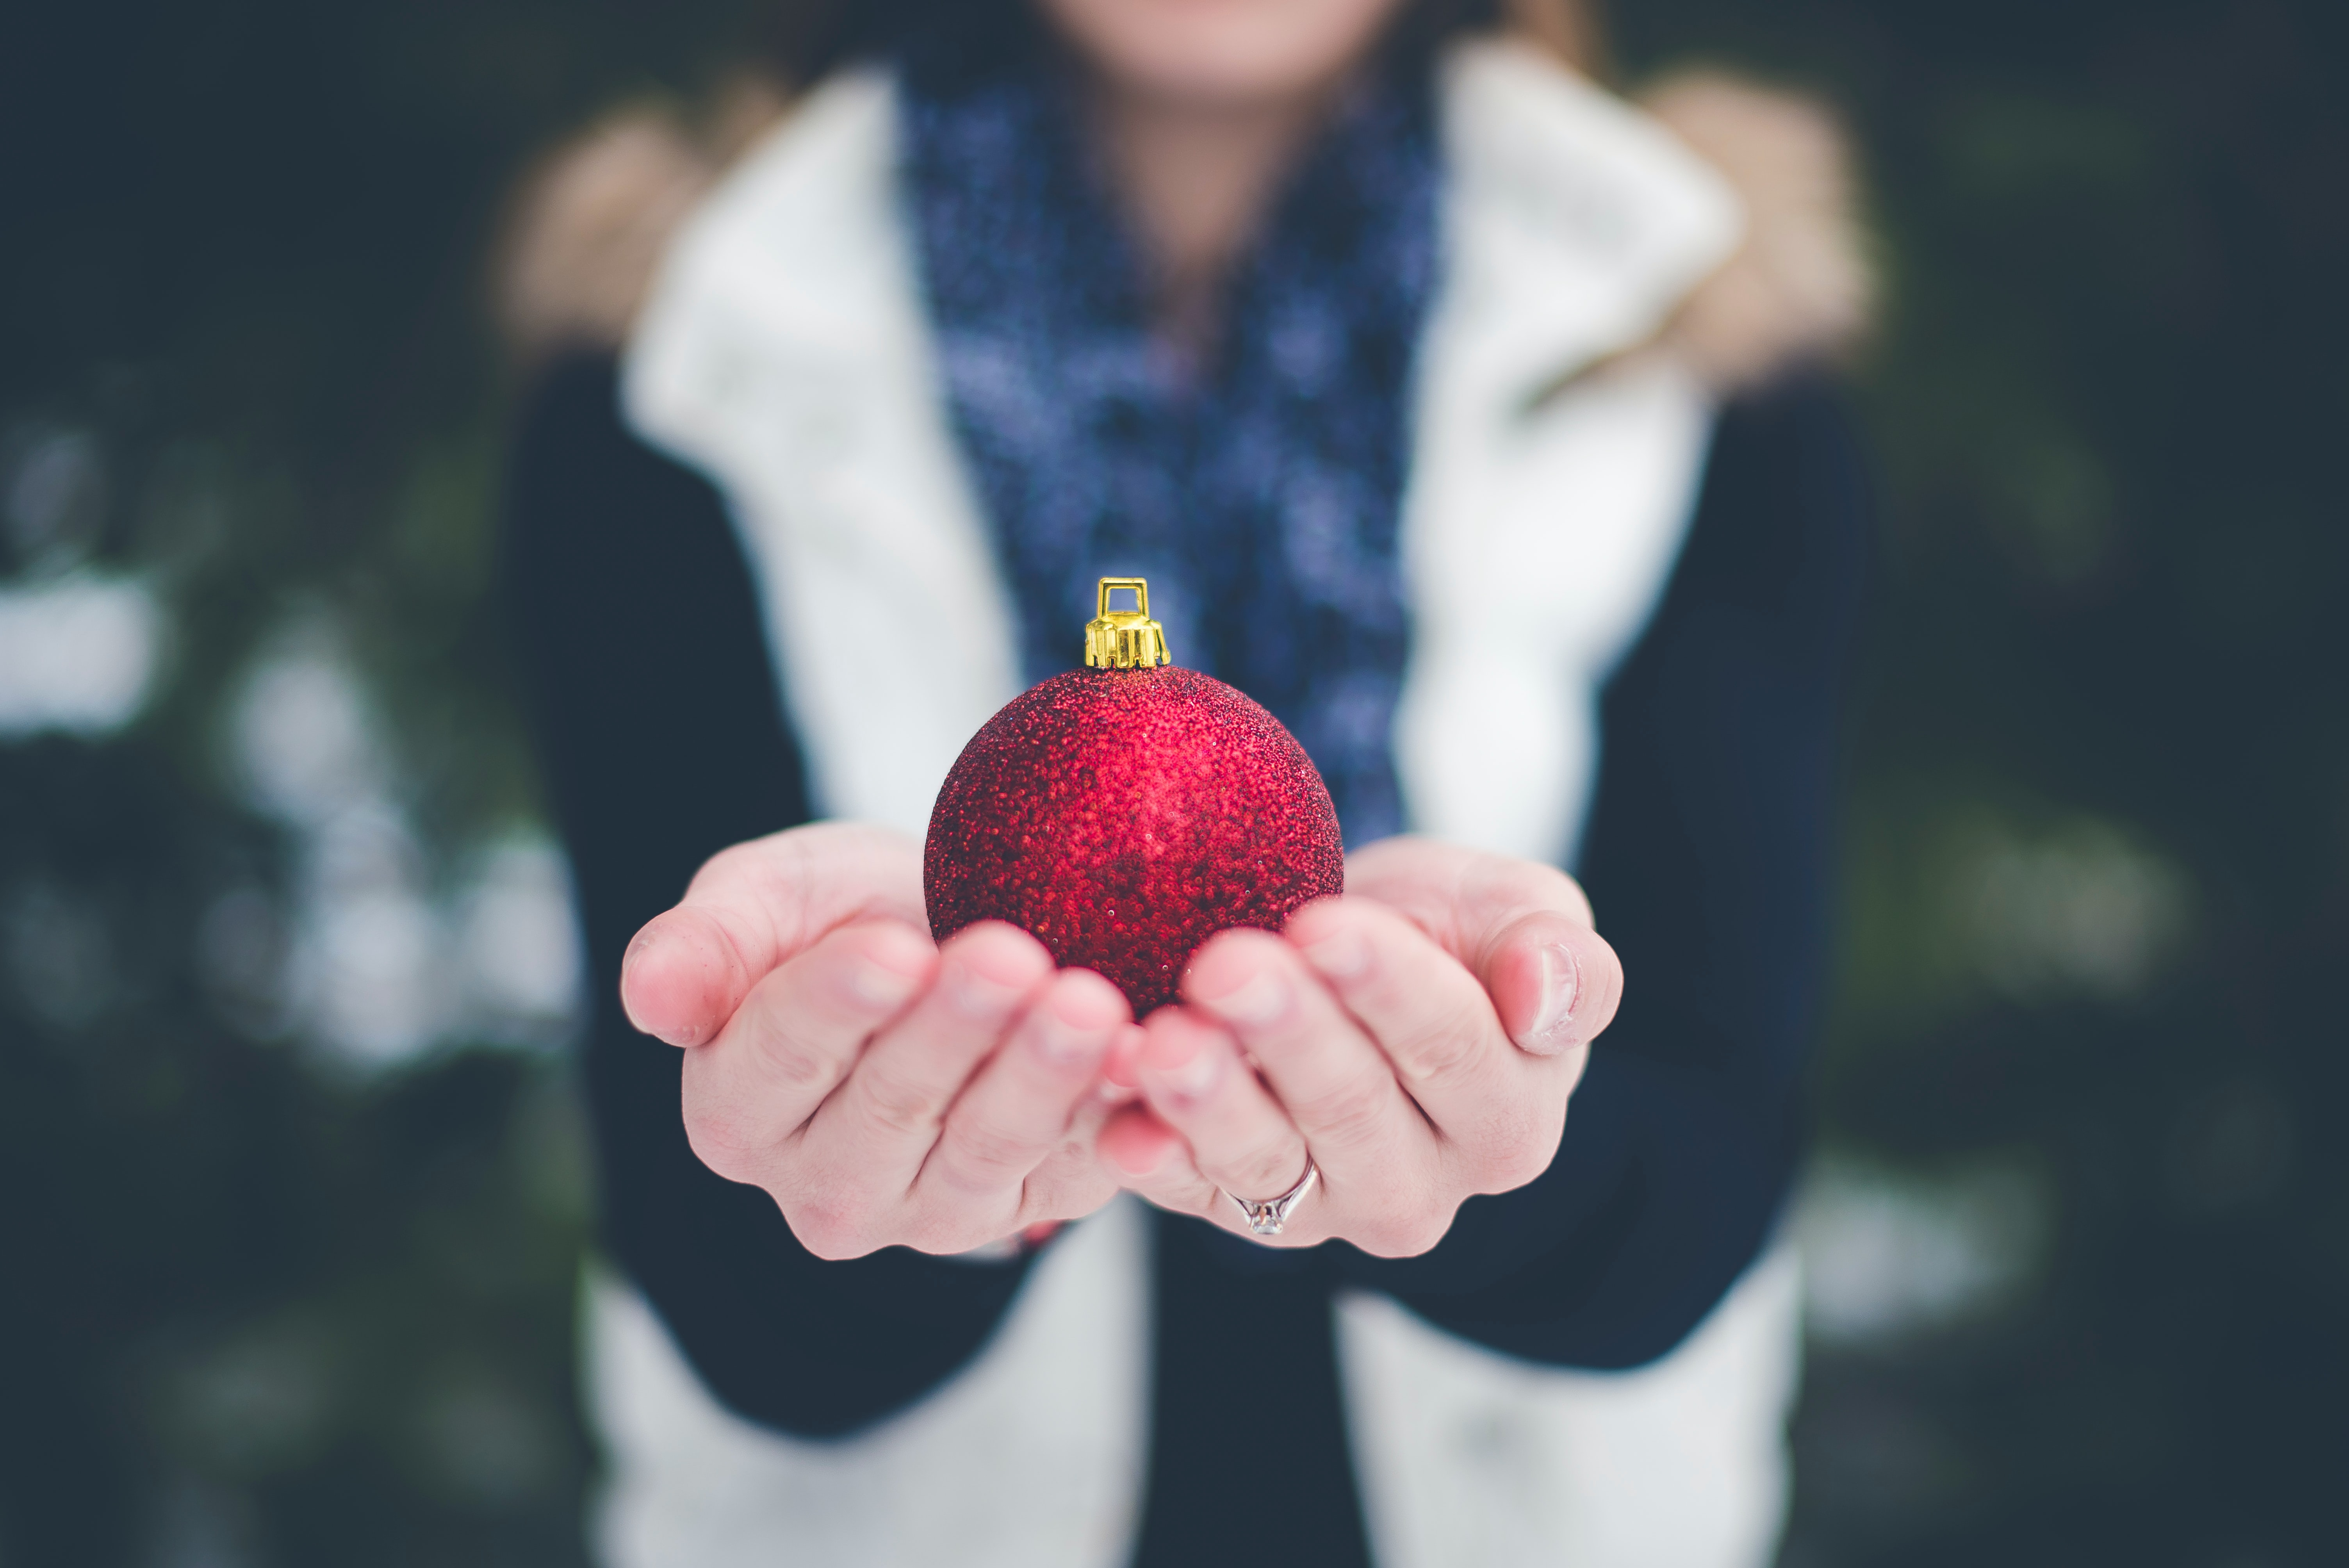 Improve Your Email Marketing Performance During The Holidays